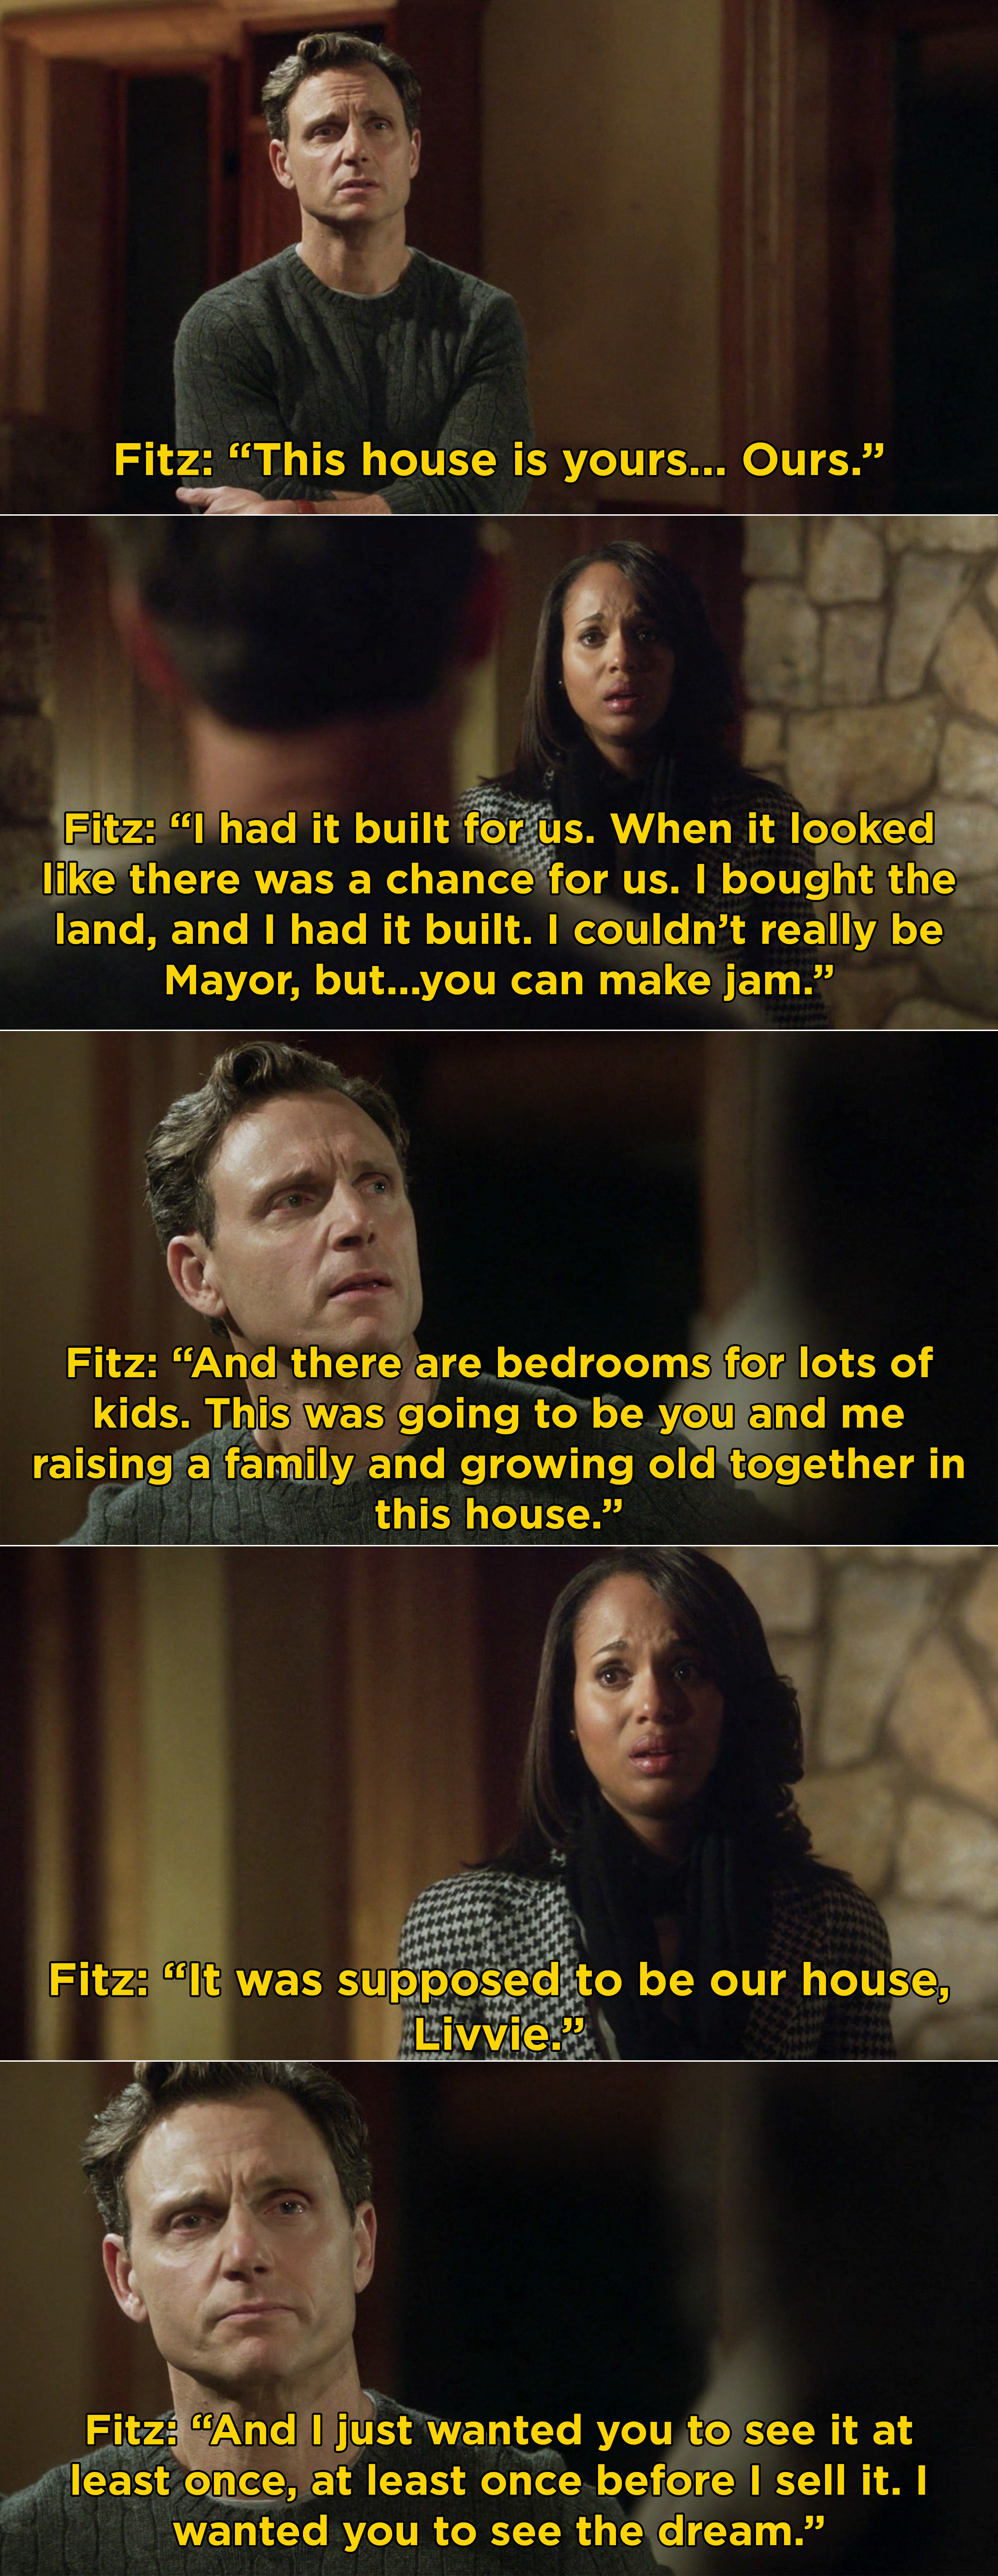 """Fitz telling Liv that he wanted her to see the house before he sells it. He wanted her to see """"the dream"""""""